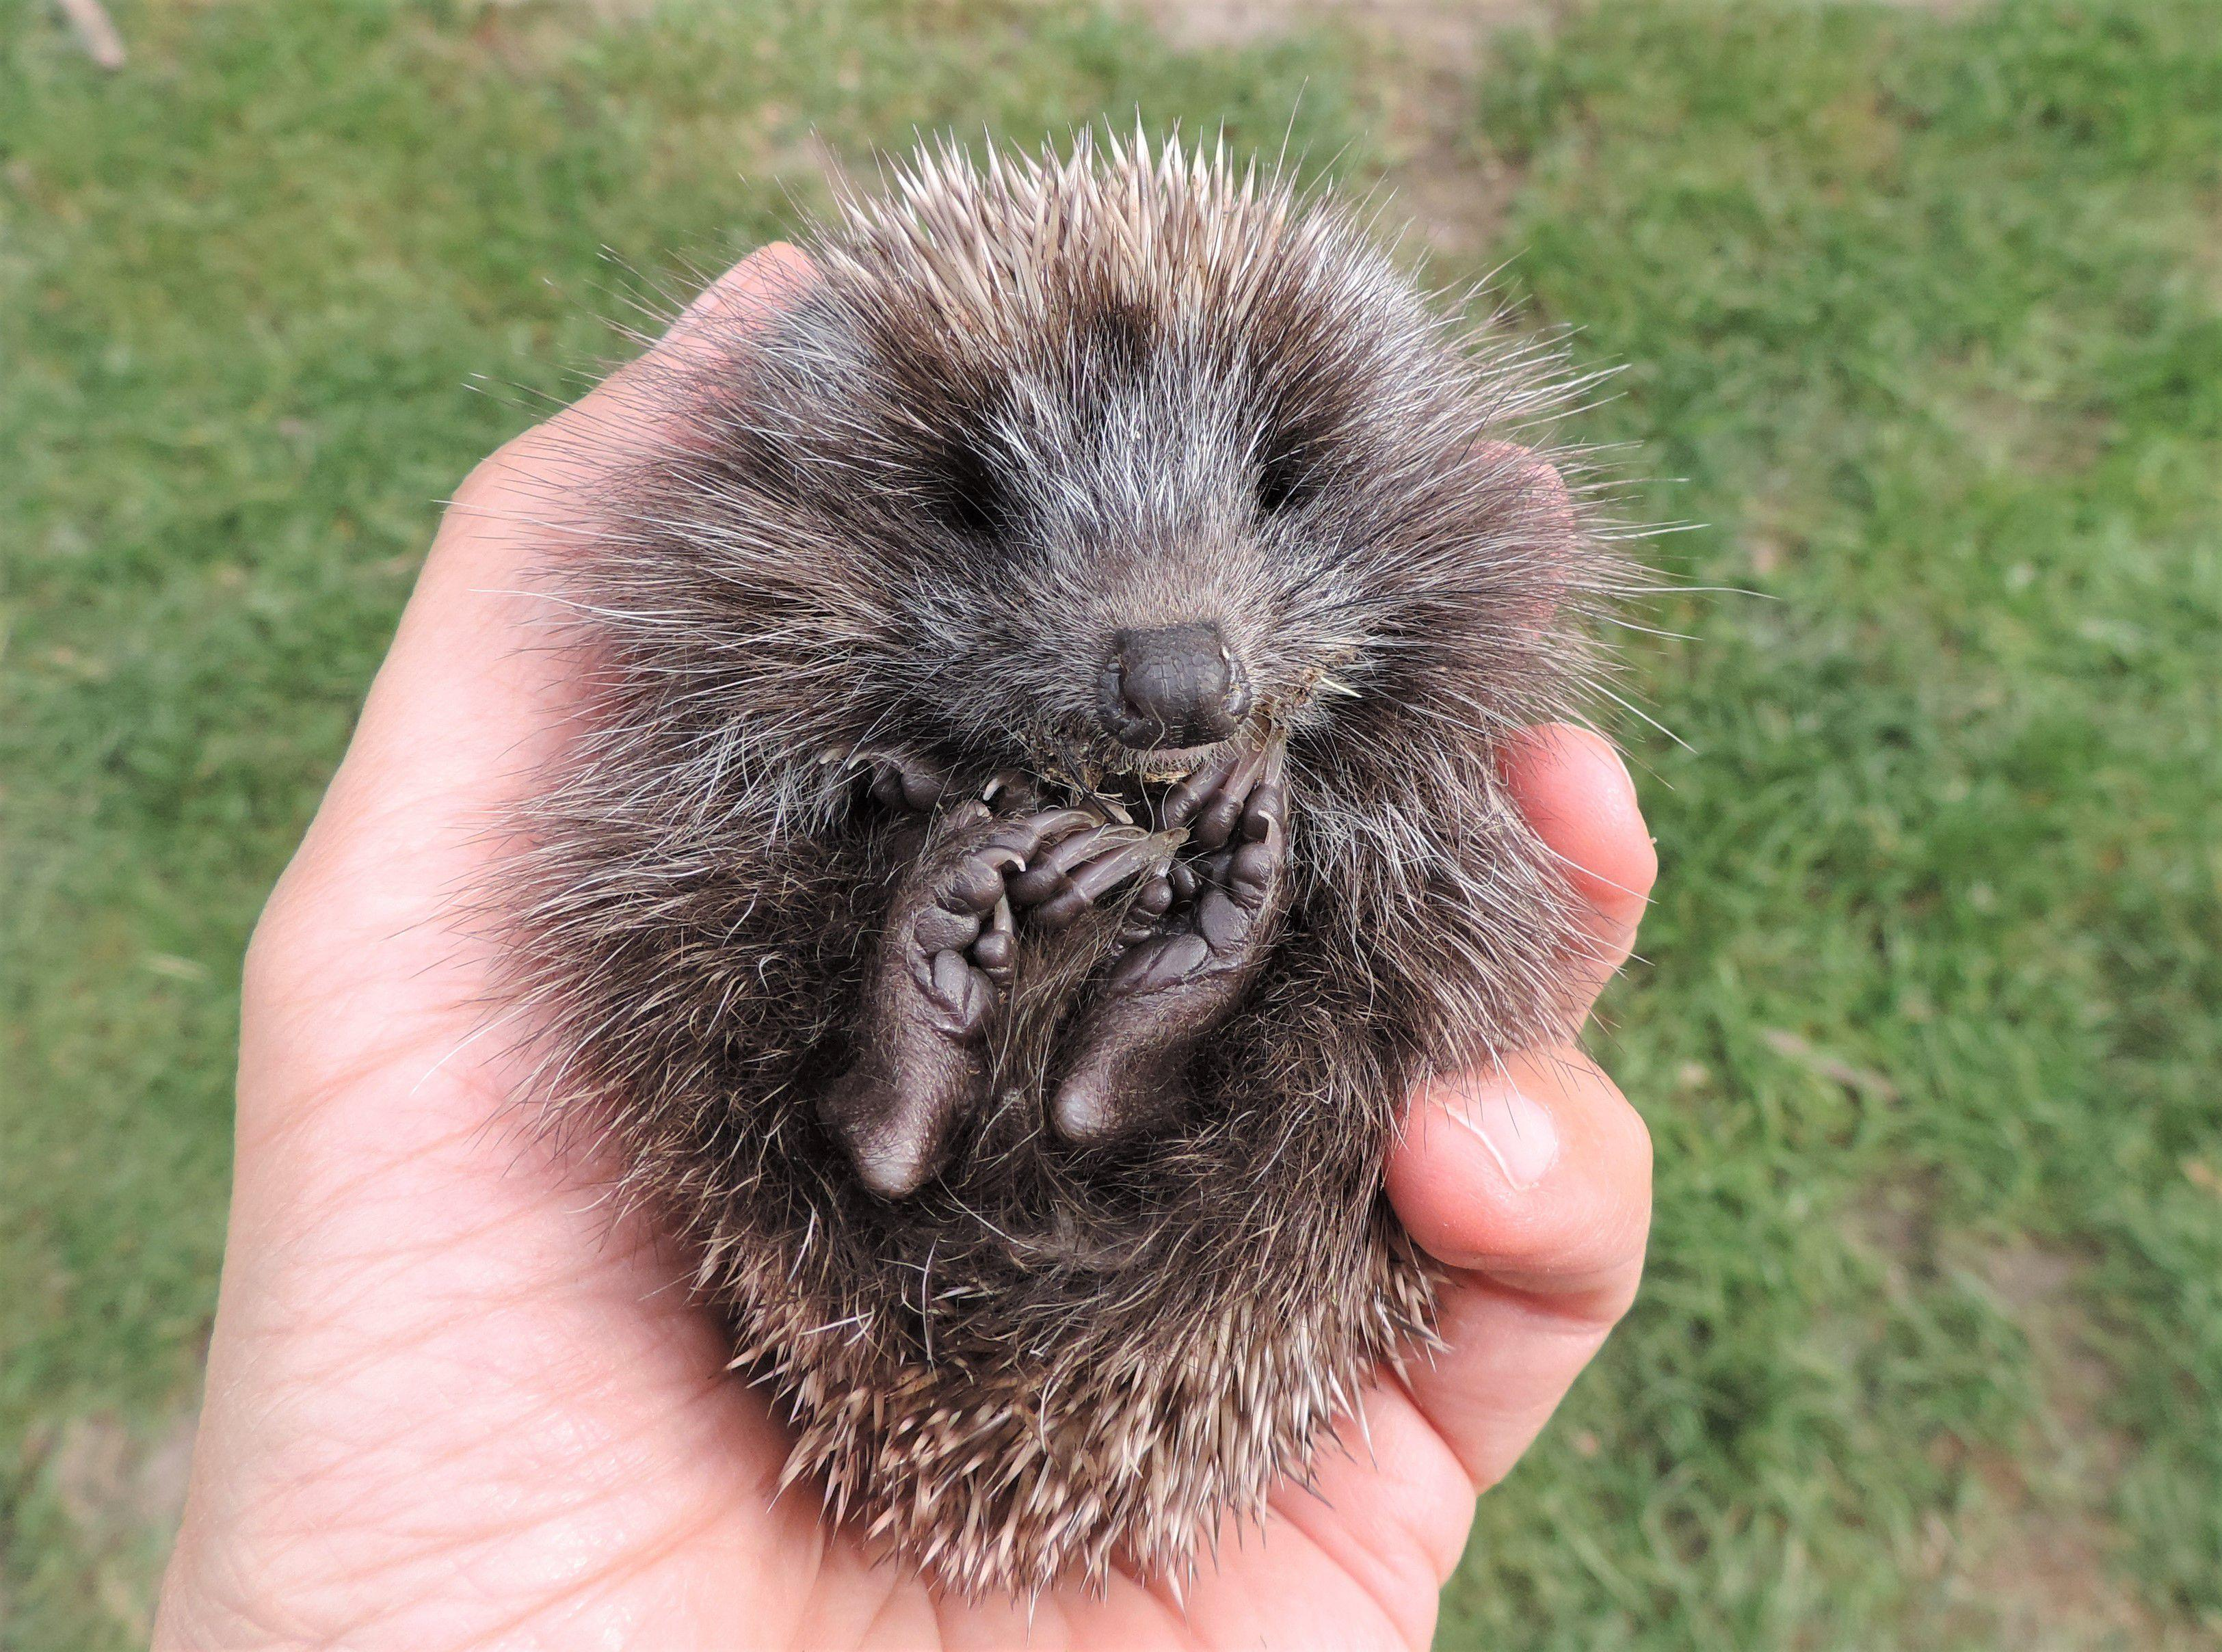 A young hedgehog found during the daytime needs help